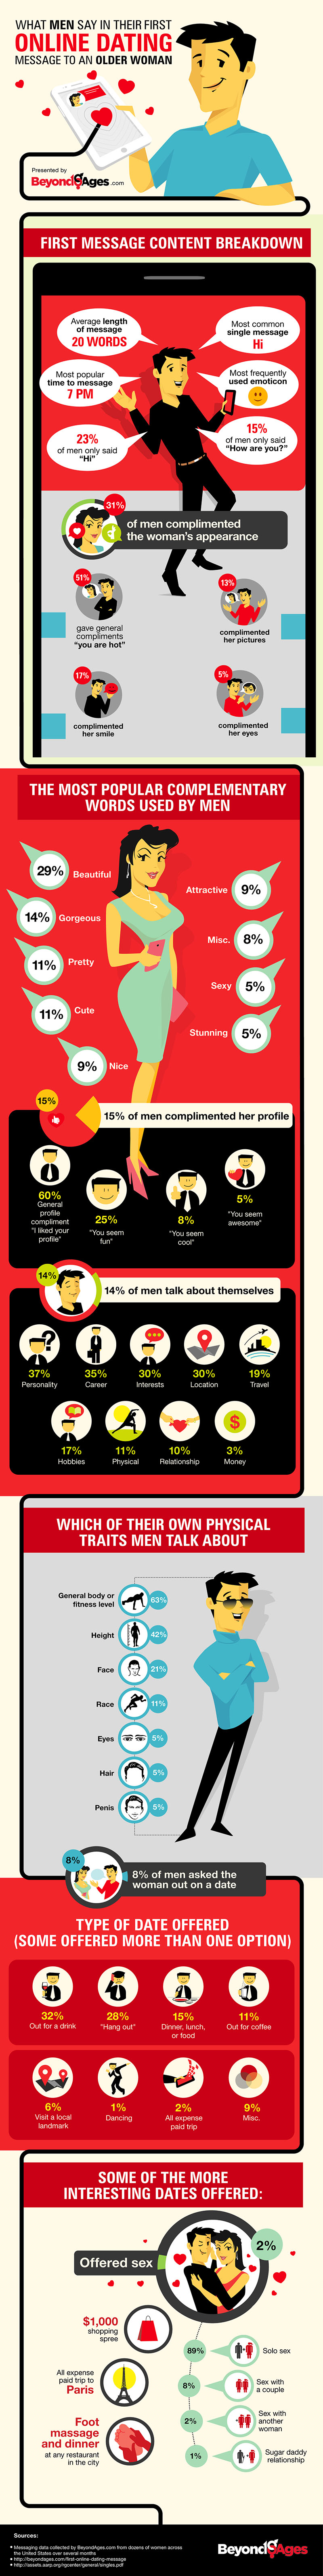 What To Say In The First Online Dating Message (Infographic)